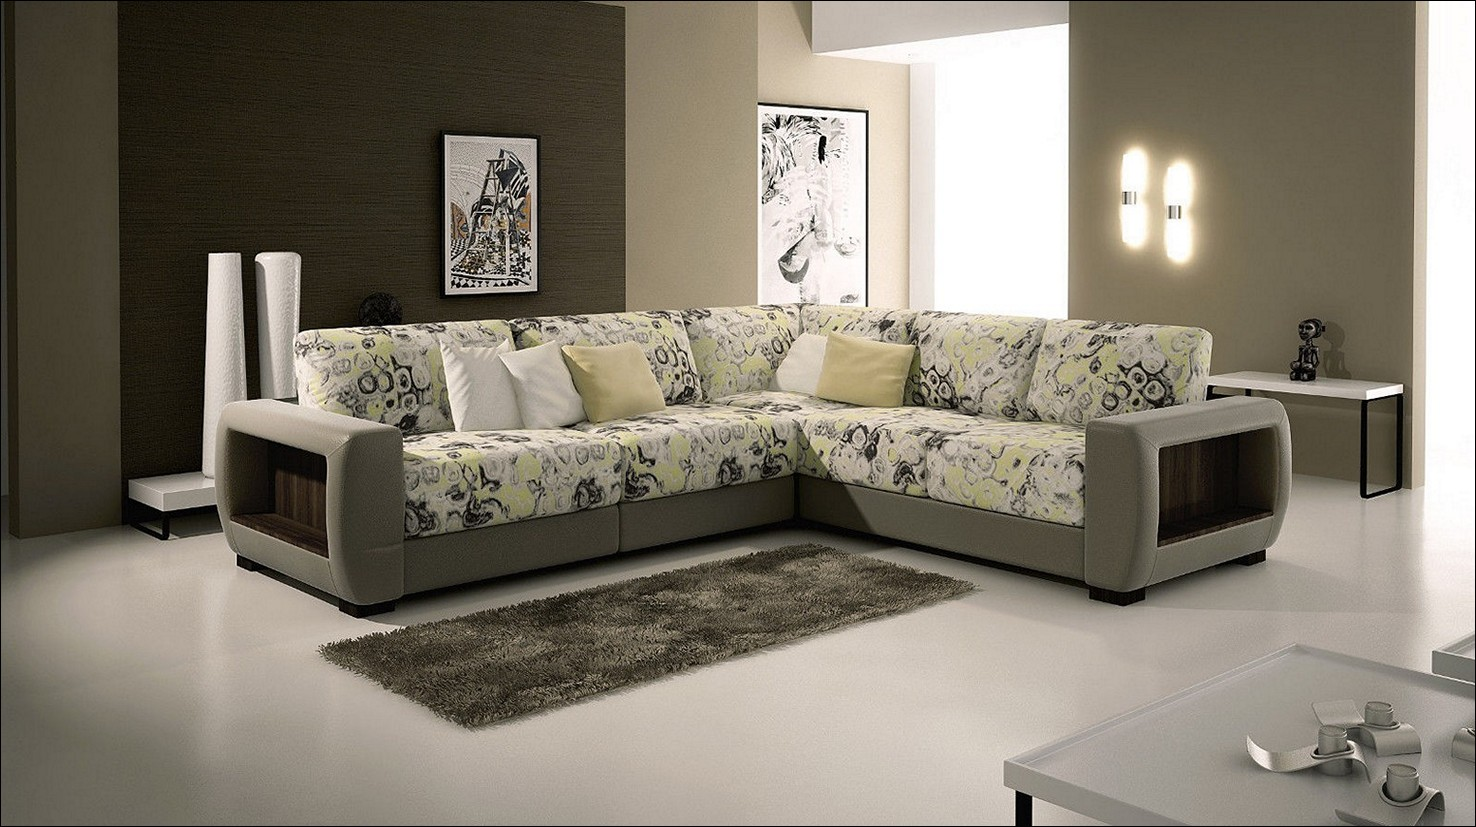 Living Room Pics Wallpapers For Living Room Design Ideas In Uk